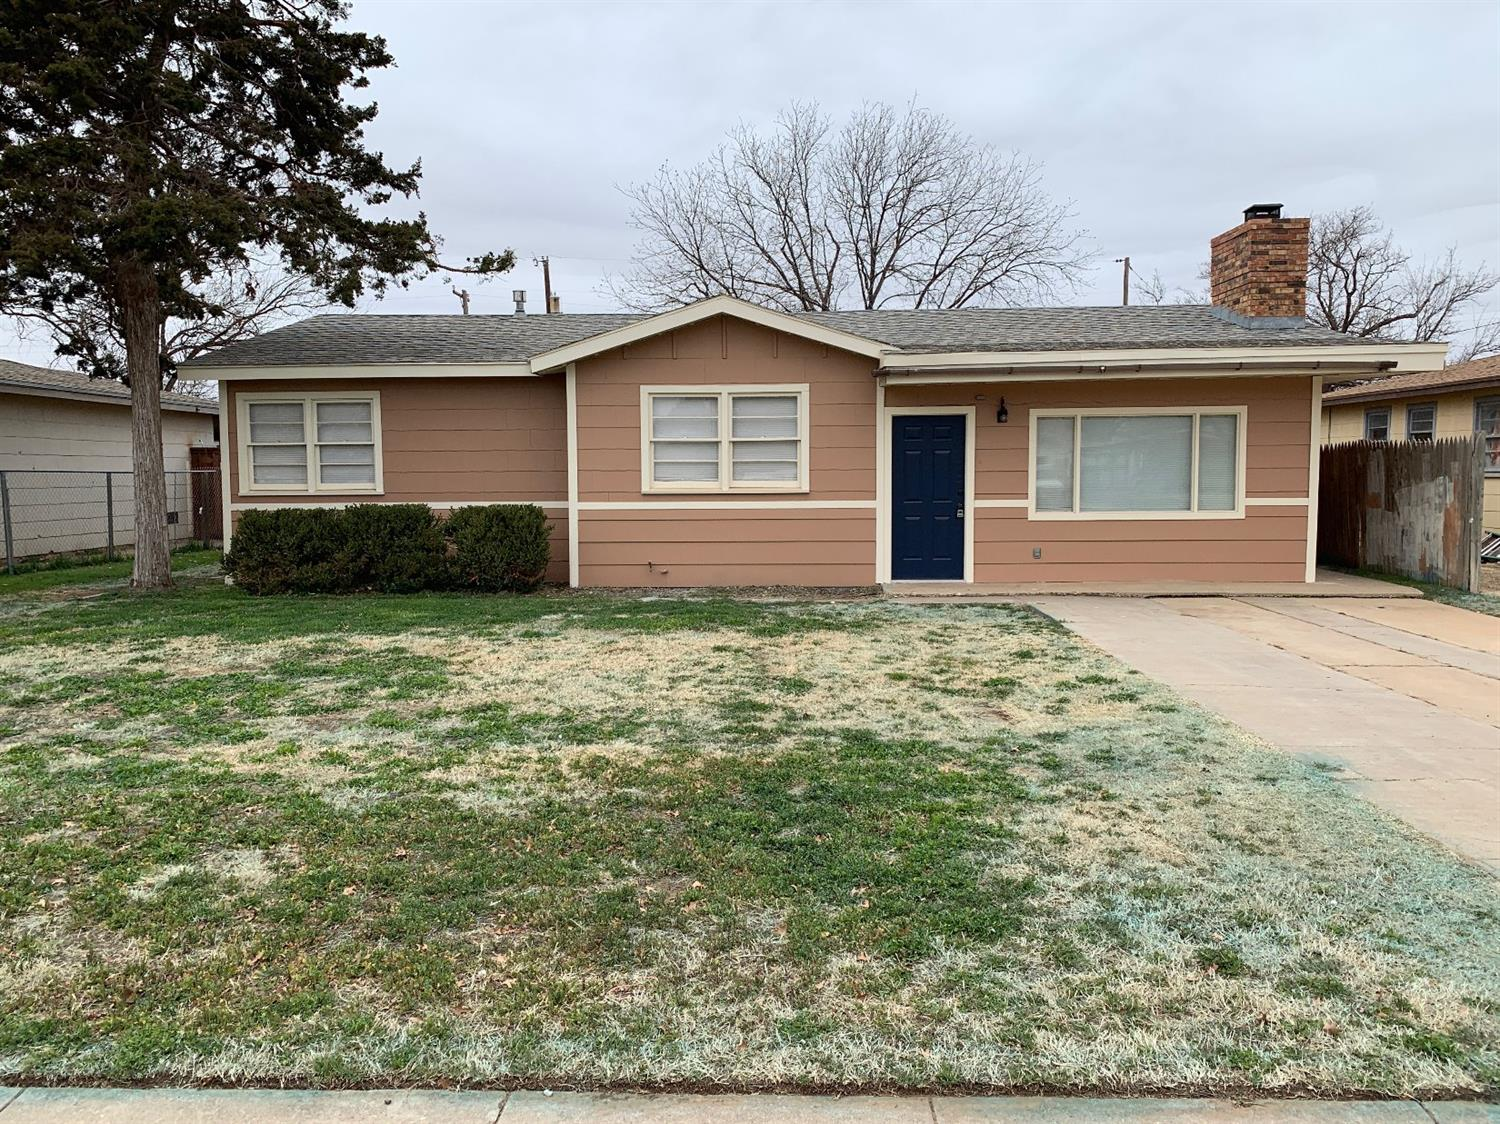 6106 Ave S, Lubbock in Lubbock County, TX 79412 Home for Sale